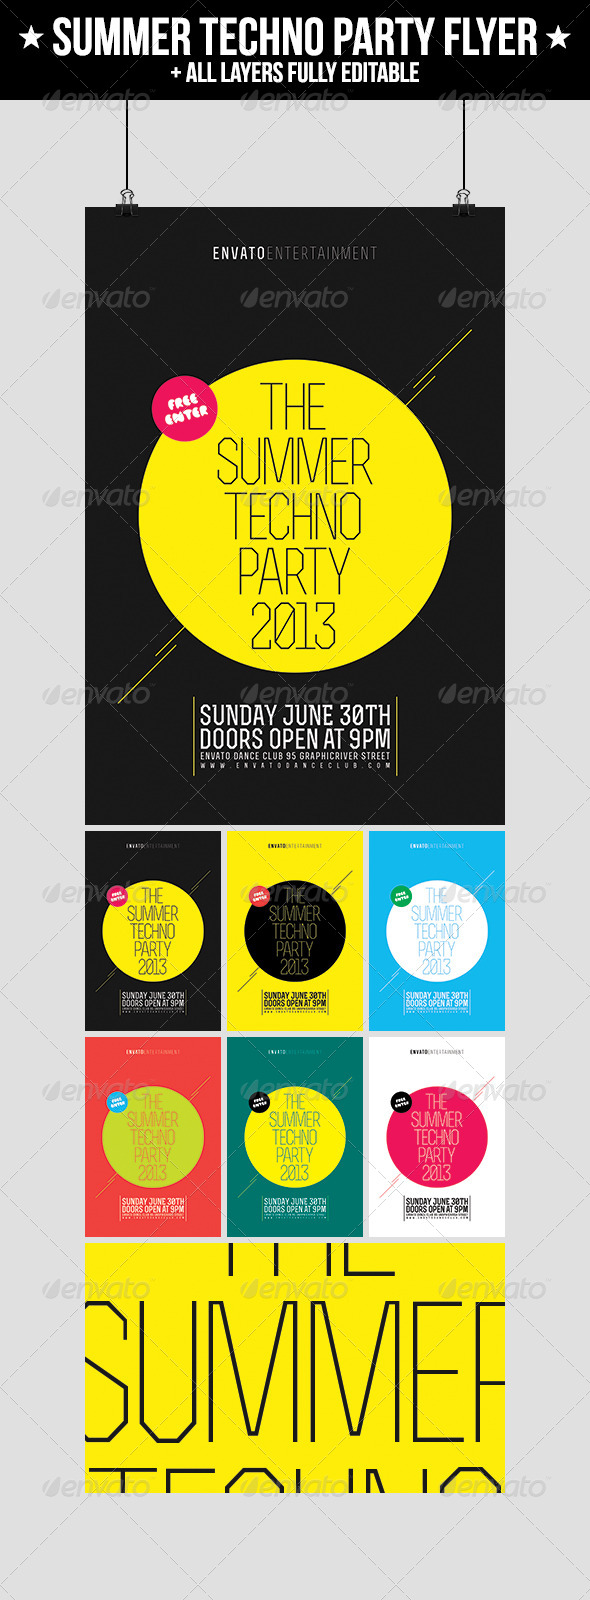 GraphicRiver Summer Techno Party Flyer 4716318